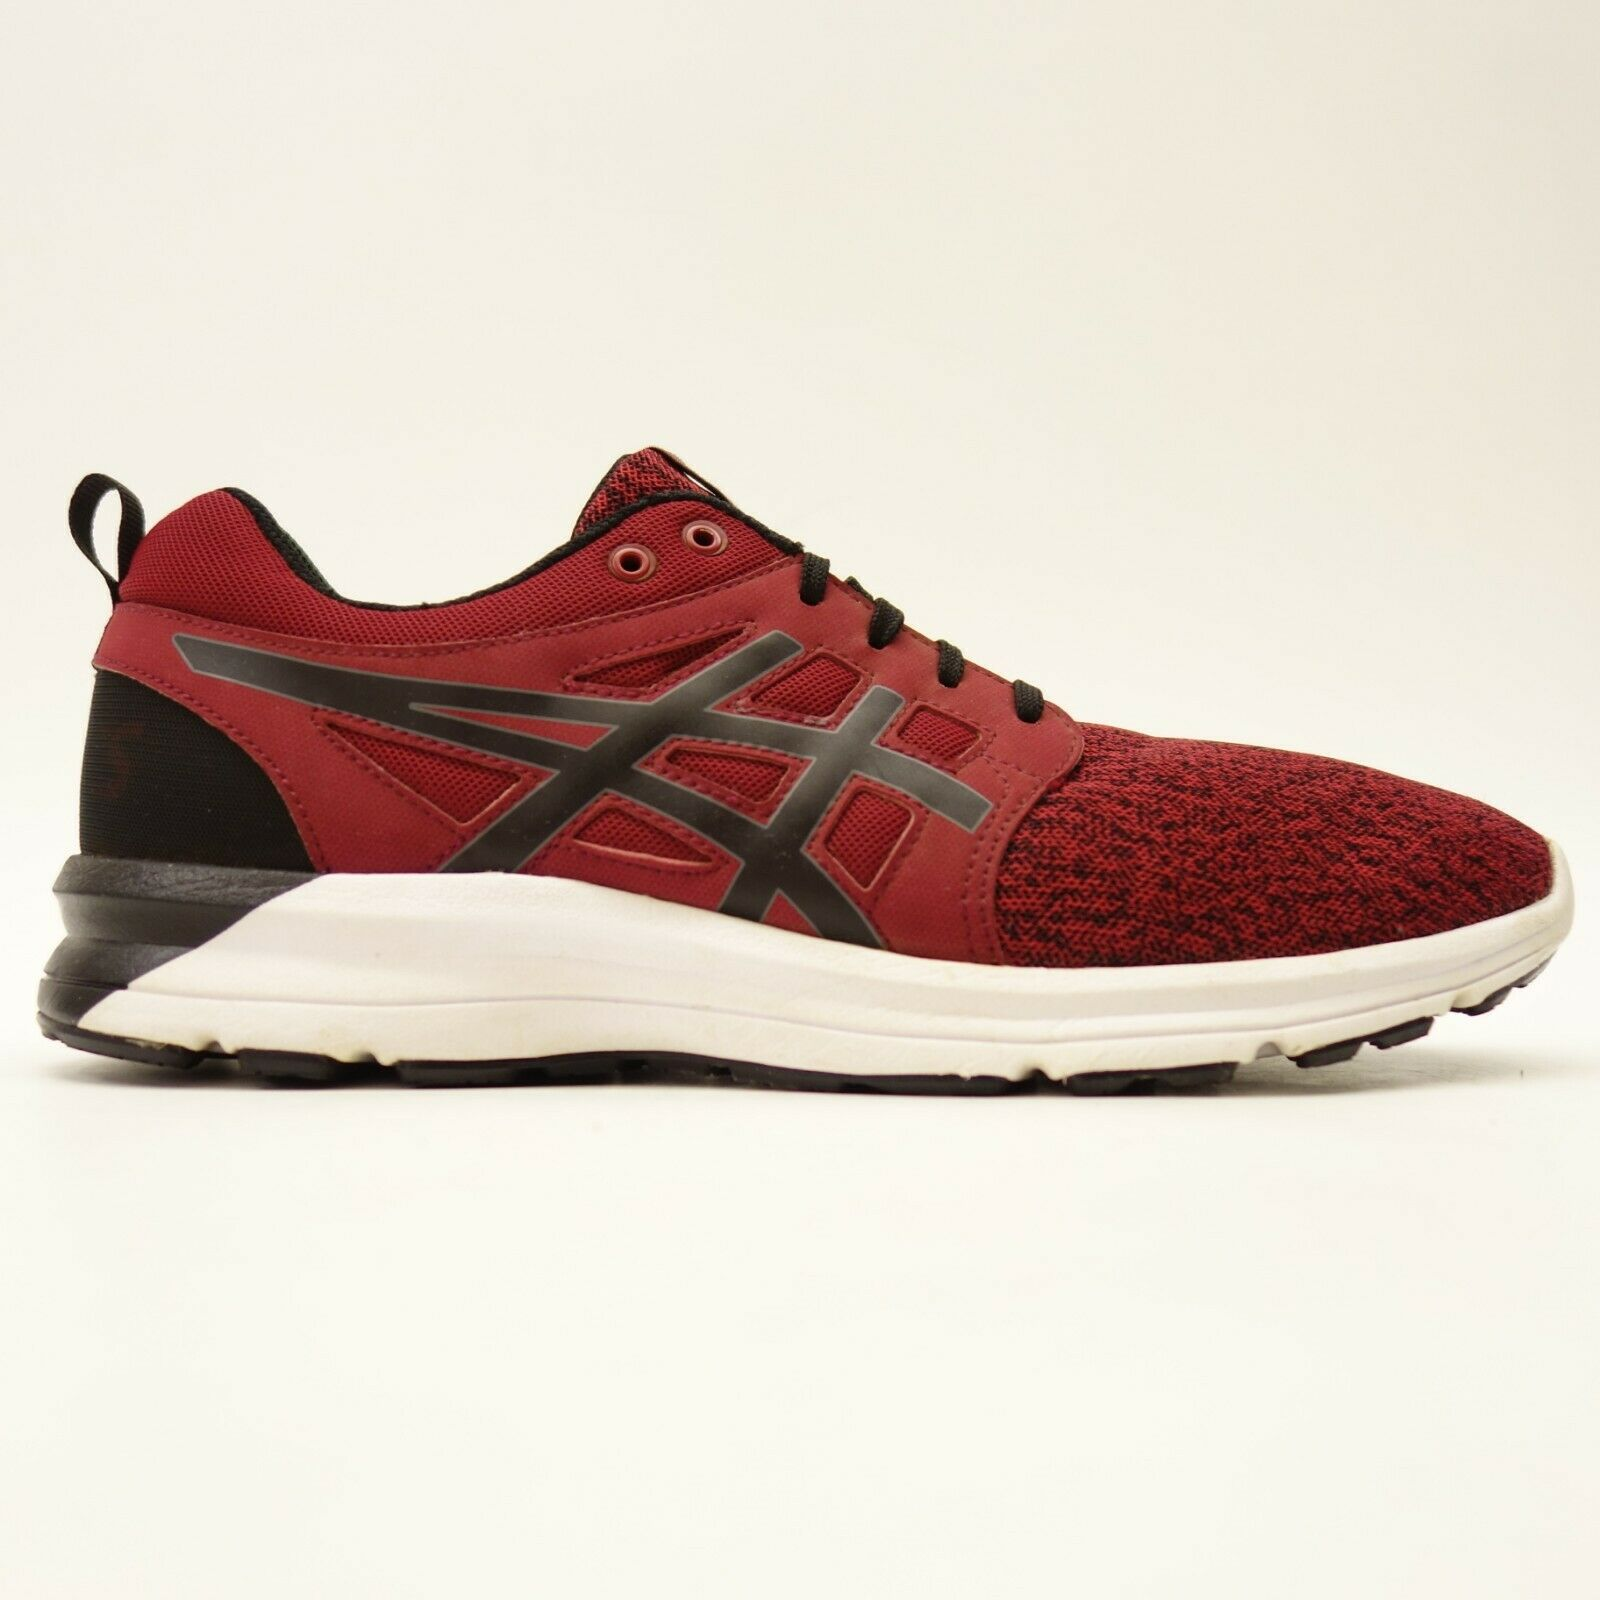 Asics Gel-Torrance hommes US 10 Ue 44 Maille rouge Athlétique chaussures Course